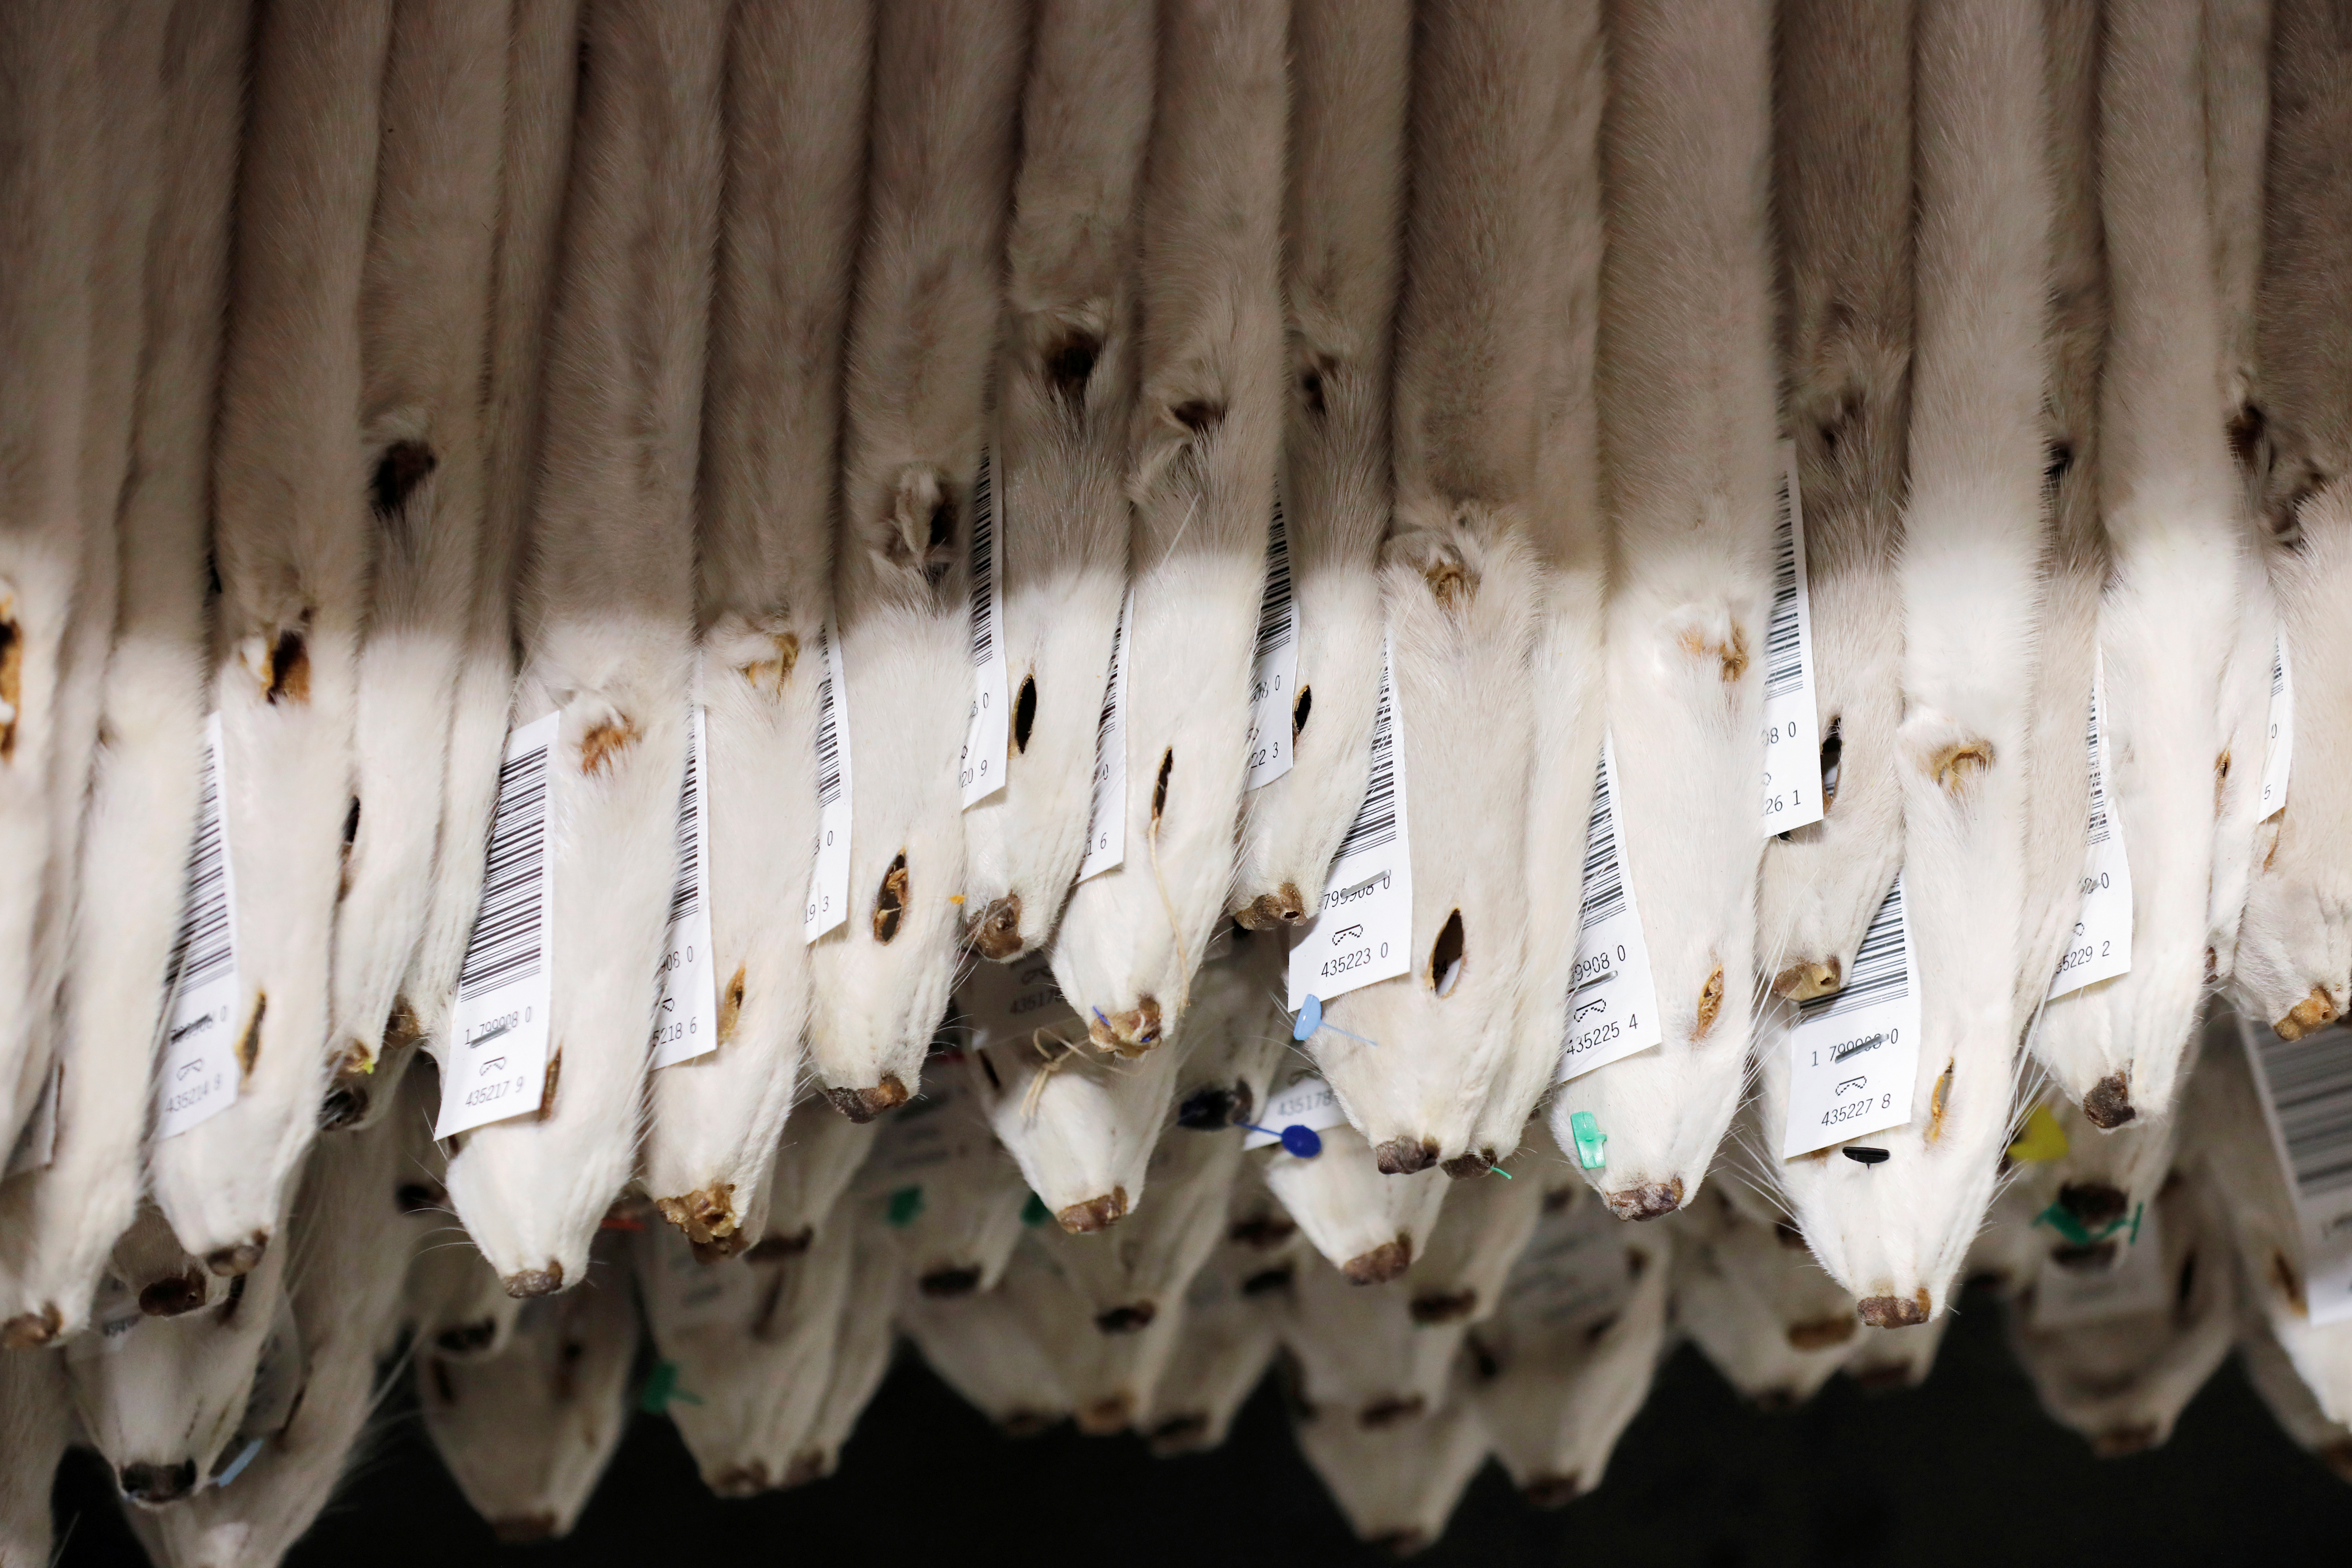 Labeled mink pelts are seen in storage at Kopenhagen Fur during the outbreak of the coronavirus disease (COVID-19) in Glostrup, Denmark, December 7, 2020. REUTERS/Andrew Kelly